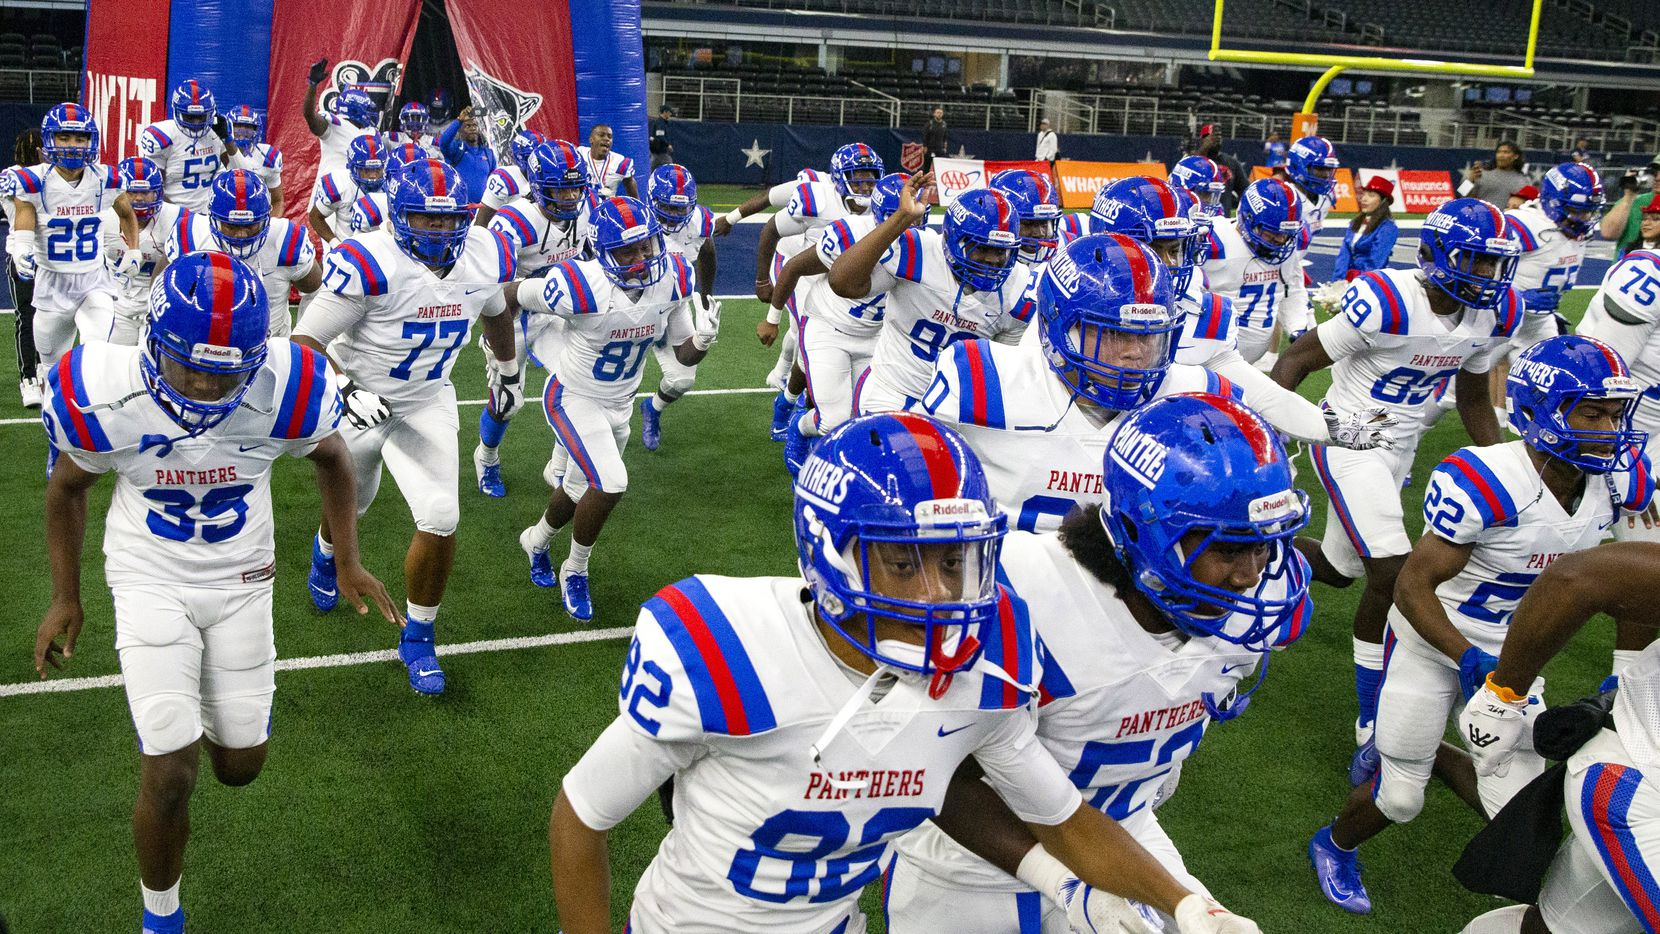 The Duncanville varsity football team emerges from an inflatable arch at the beginning of the Class 6A Division I area-round high school football playoff game against Flower Mound high school at the AT&T Stadium in Arlington, Texas, on Saturday, November 23, 2019. (Lynda M. Gonzalez/The Dallas Morning News)